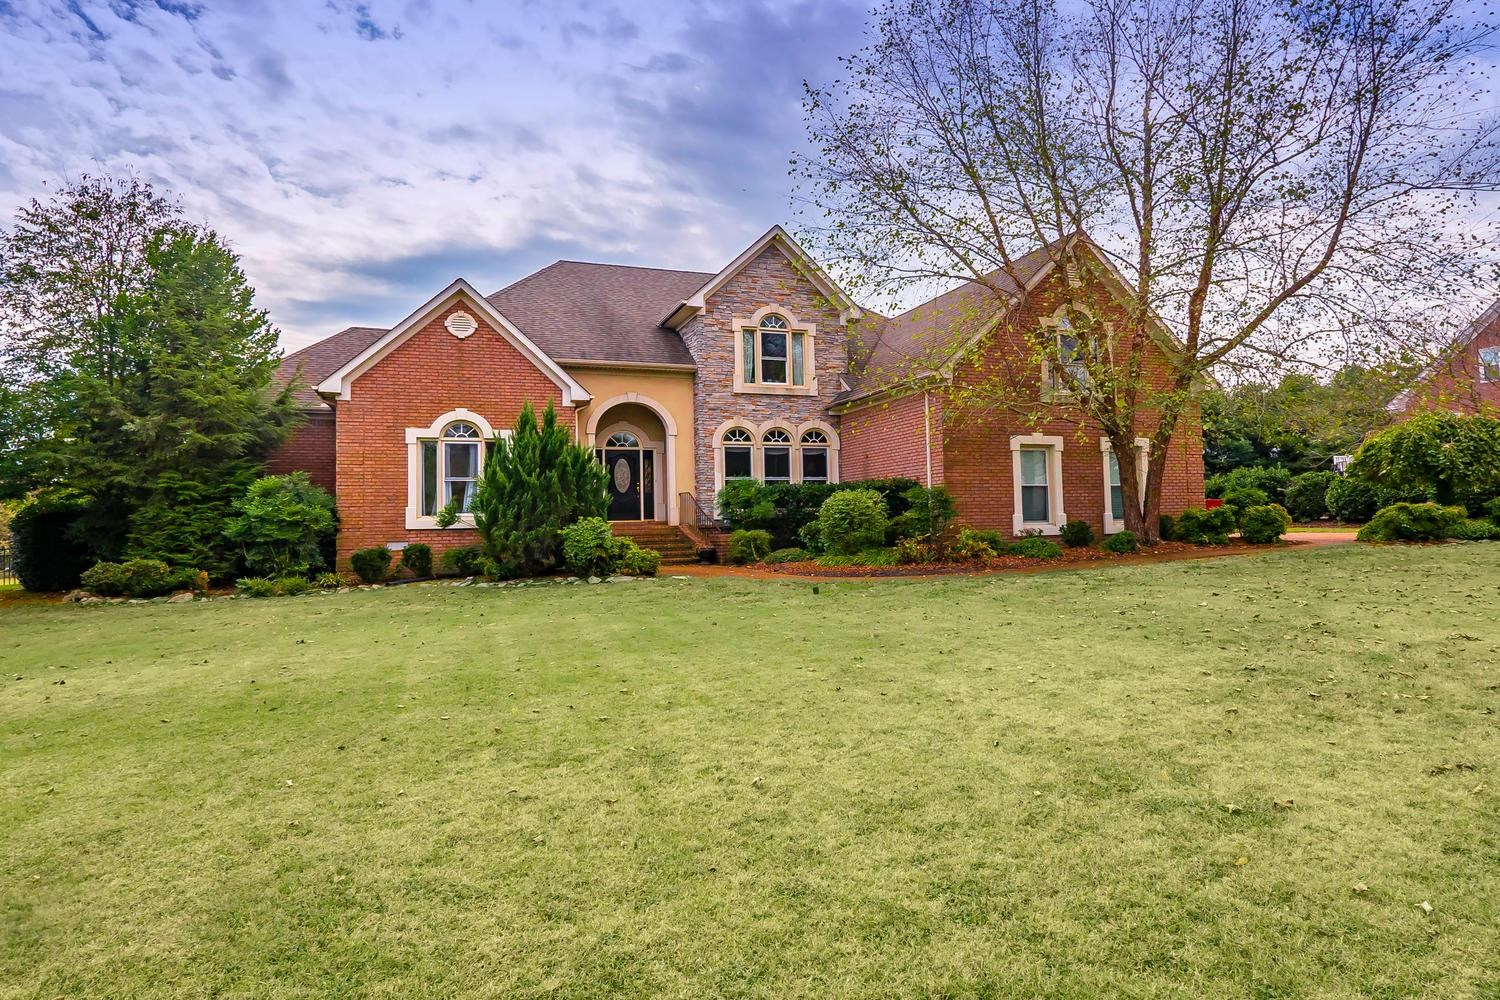 Home For Sale in Franklin, TN